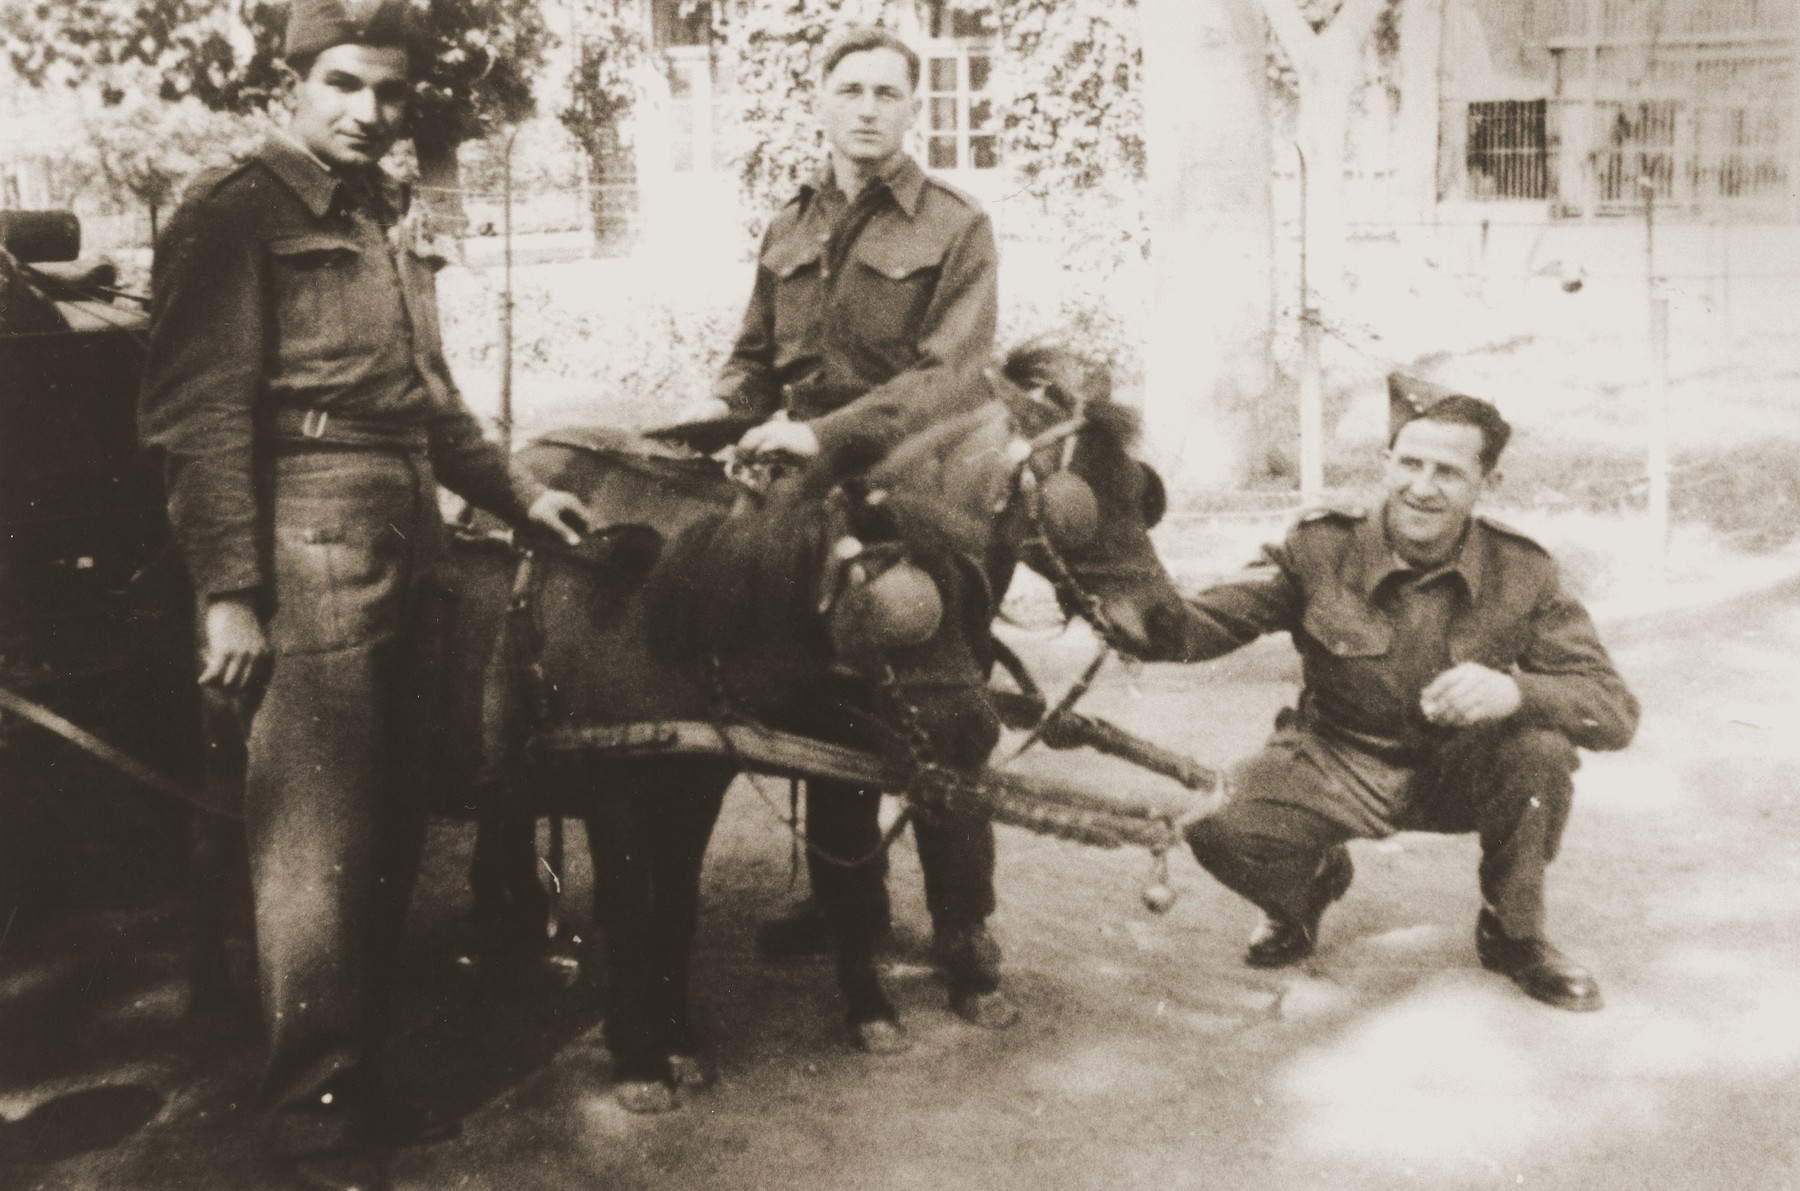 Palestinian Jewish parachutists pose next to a cart drawn by a donkey.  Pictured are Shaika Dan, Dov (Berger) Harari and Uriel Kanner.